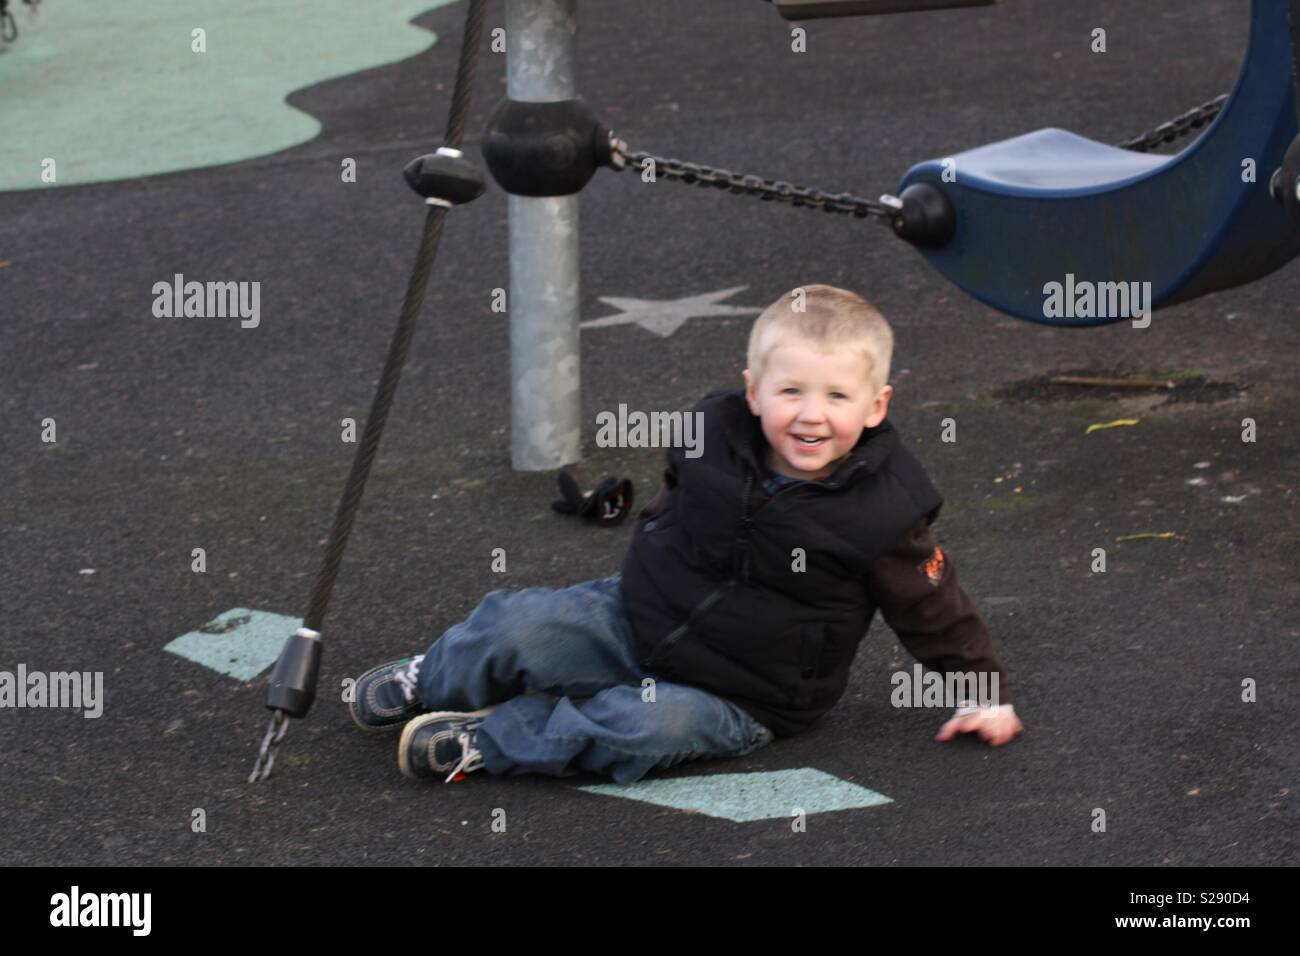 Little blonde haired boy sitting on floor in playground - Stock Image